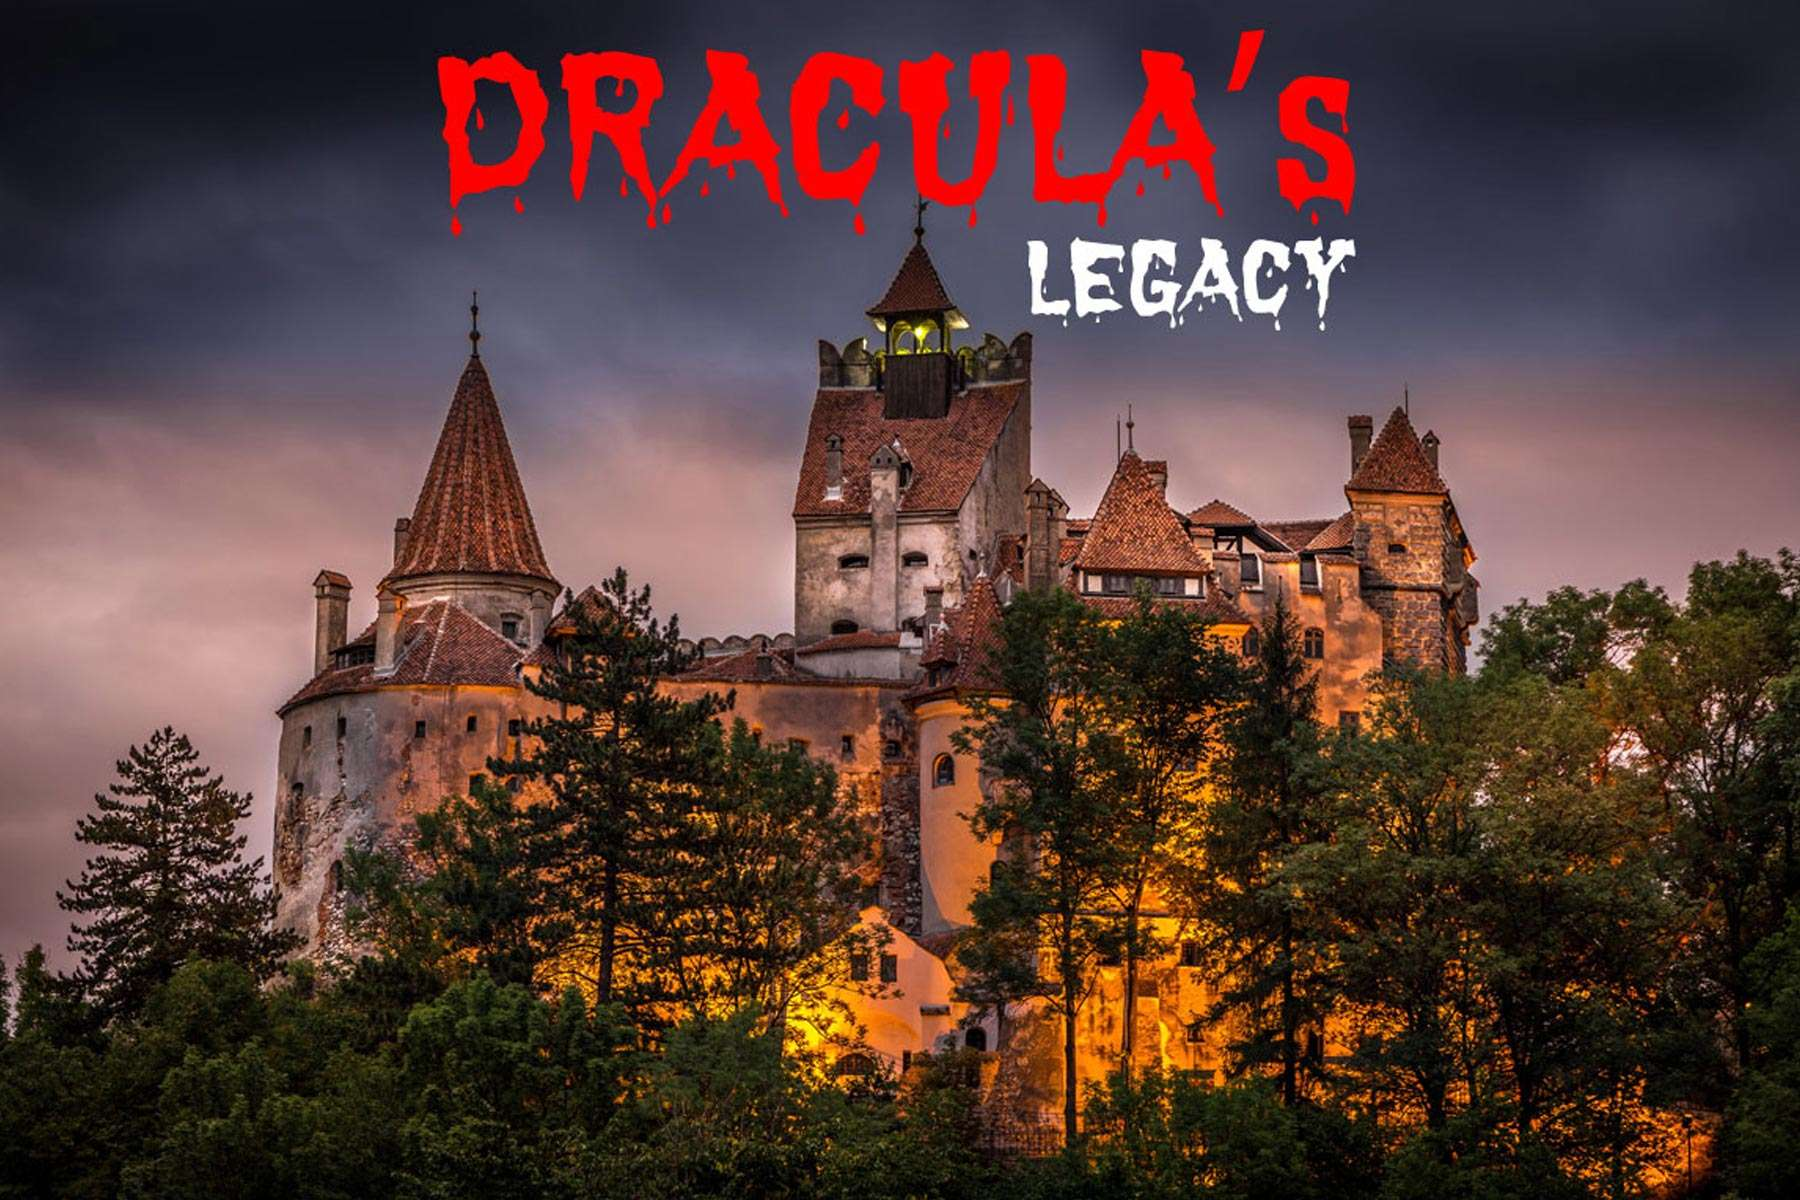 Vampires in Romania: The Myth, The Legends, and some fun for Halloween